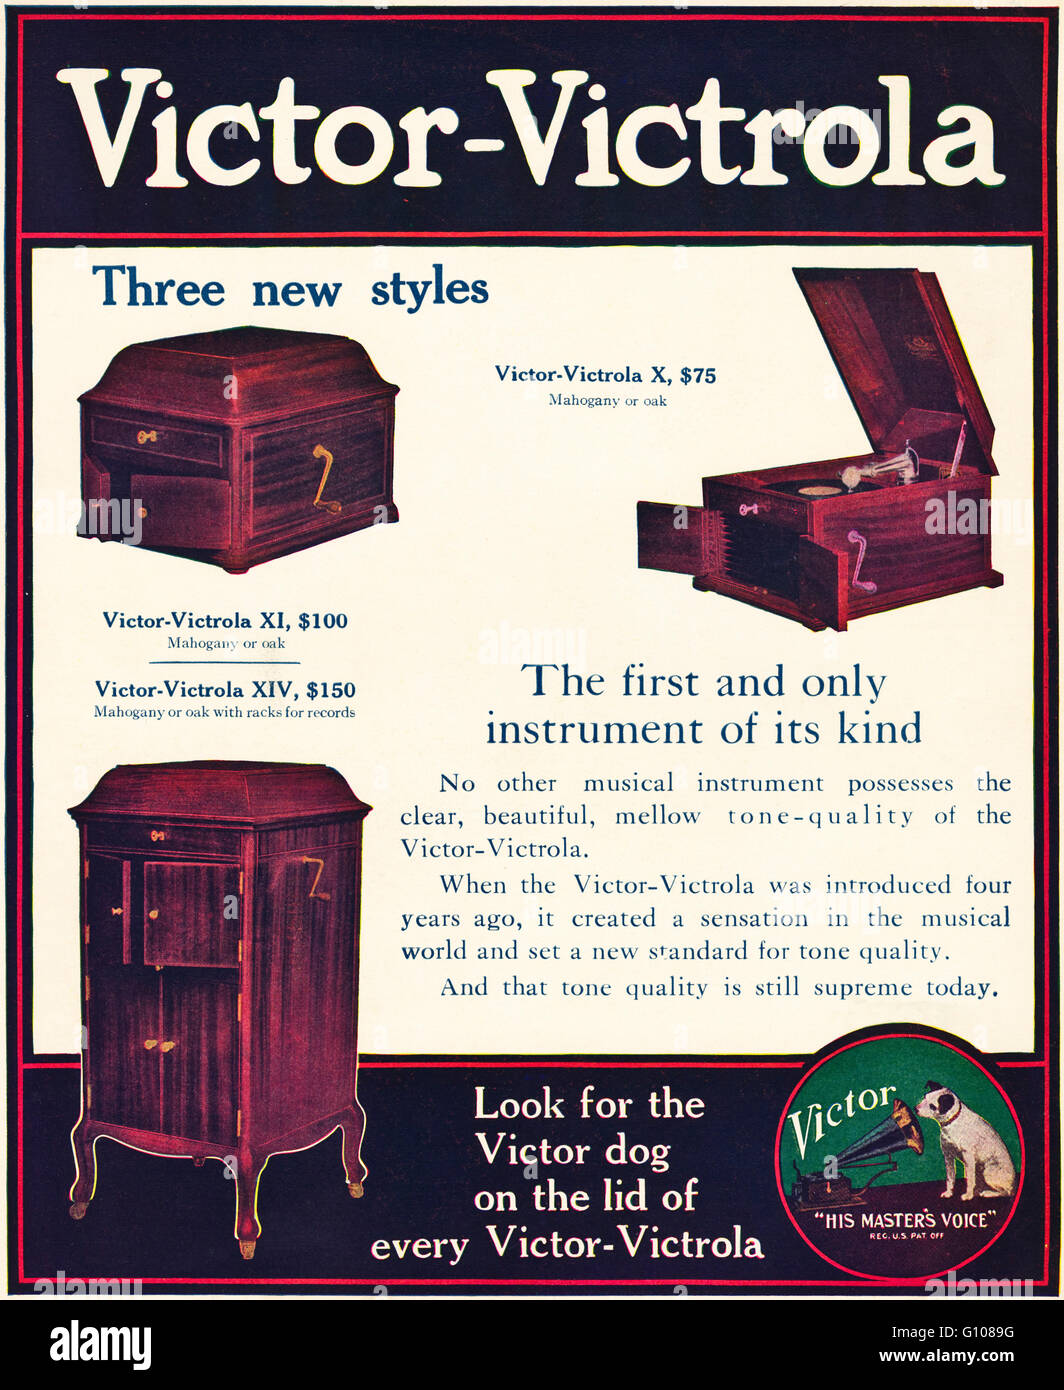 Original old vintage American magazine full page colour advert from the Edwardian era dated 1910. Advertisement - Stock Image